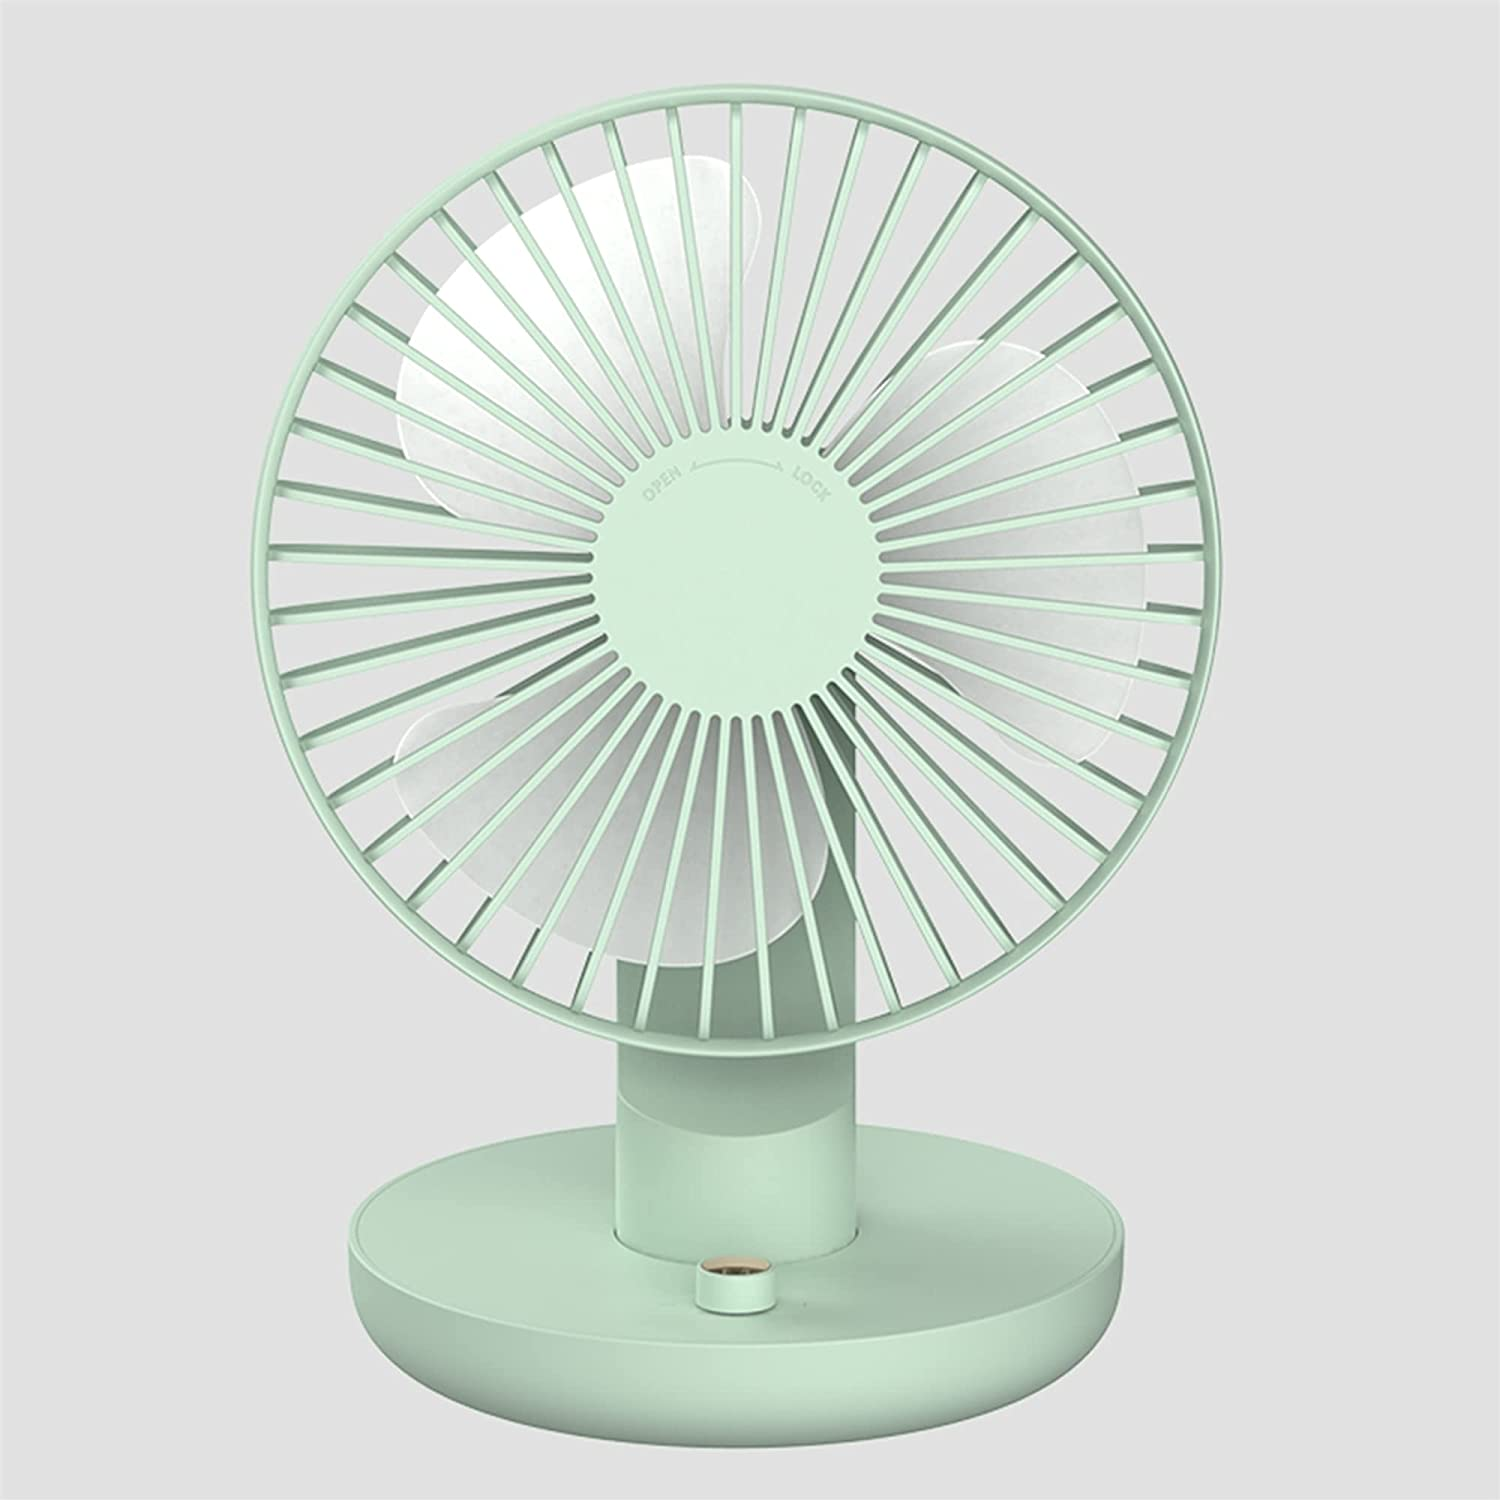 67% OFF of fixed price NGLWA Mini Desktop Fan Portable De for Home Personal Office 100% quality warranty